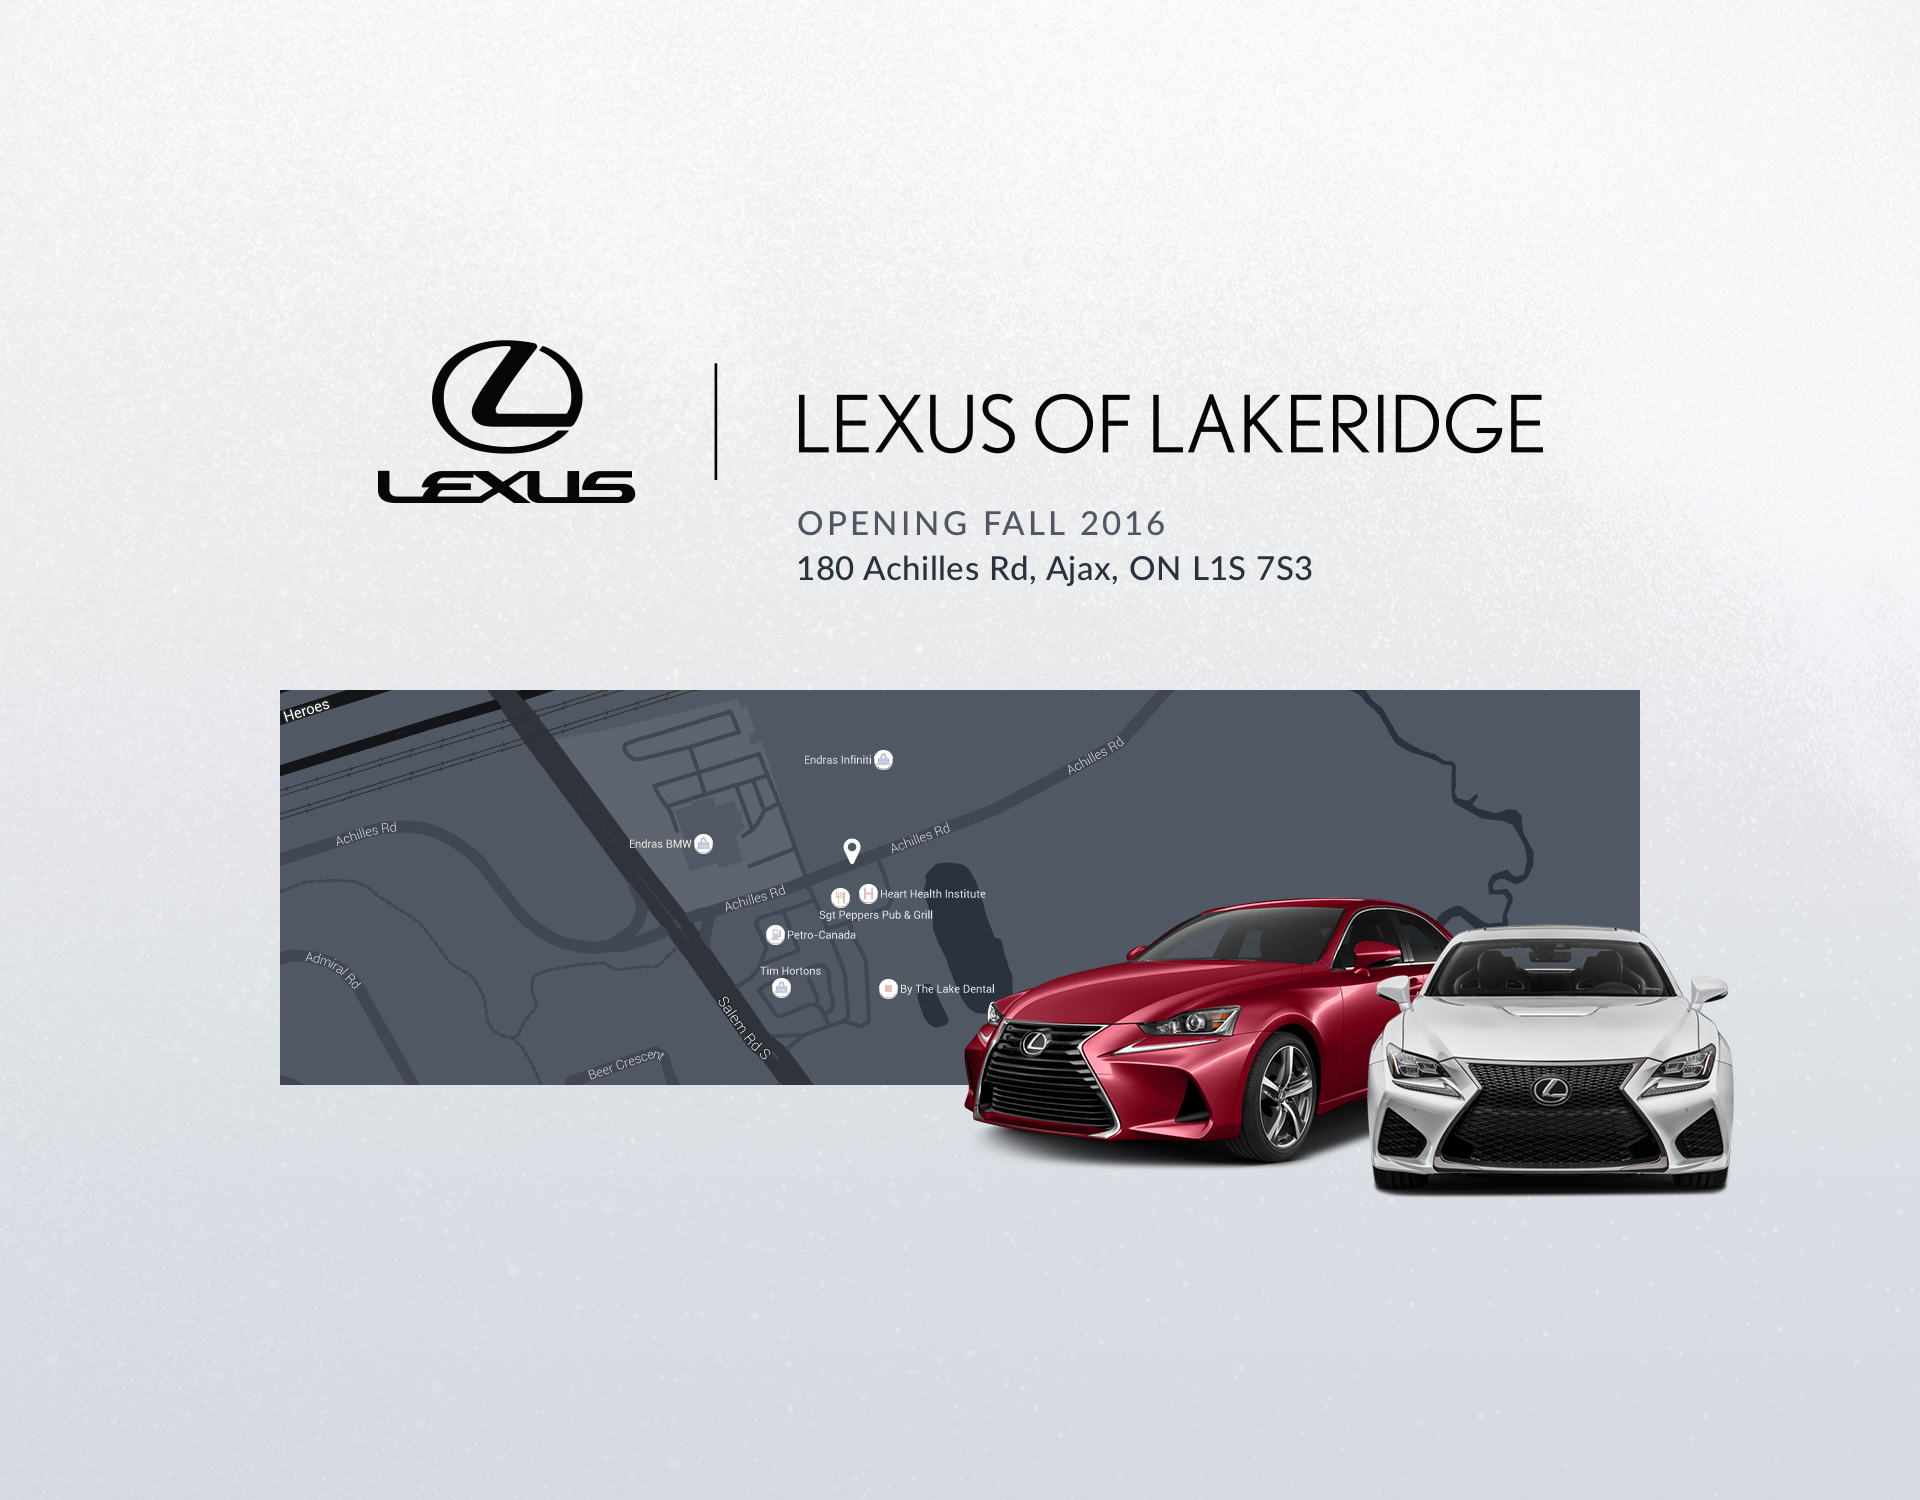 Lexus of Lakeridge